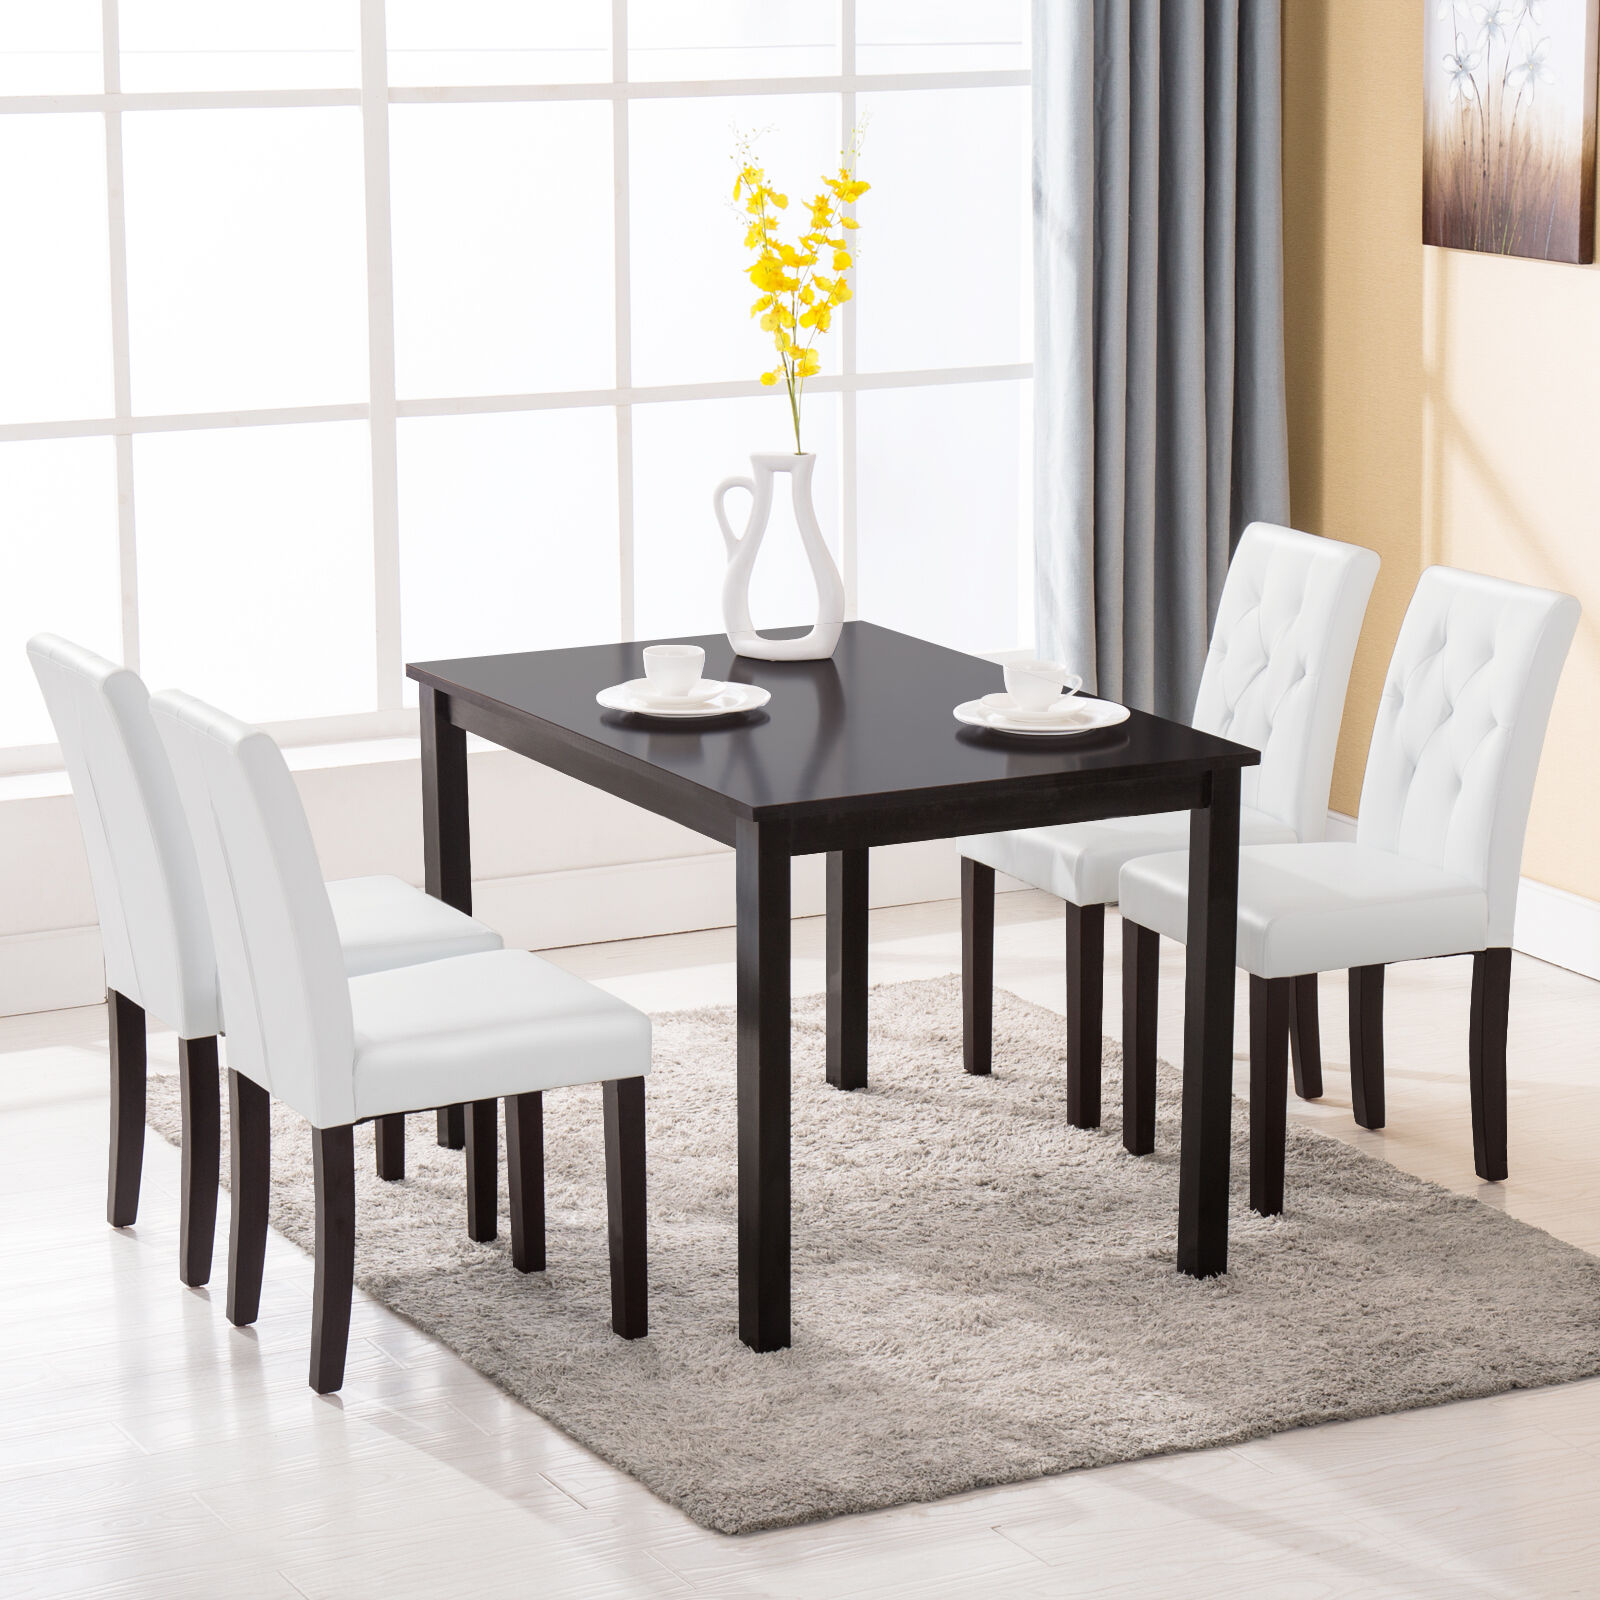 5 piece dining table set 4 chairs room kitchen dinette for Kitchen dining table chairs